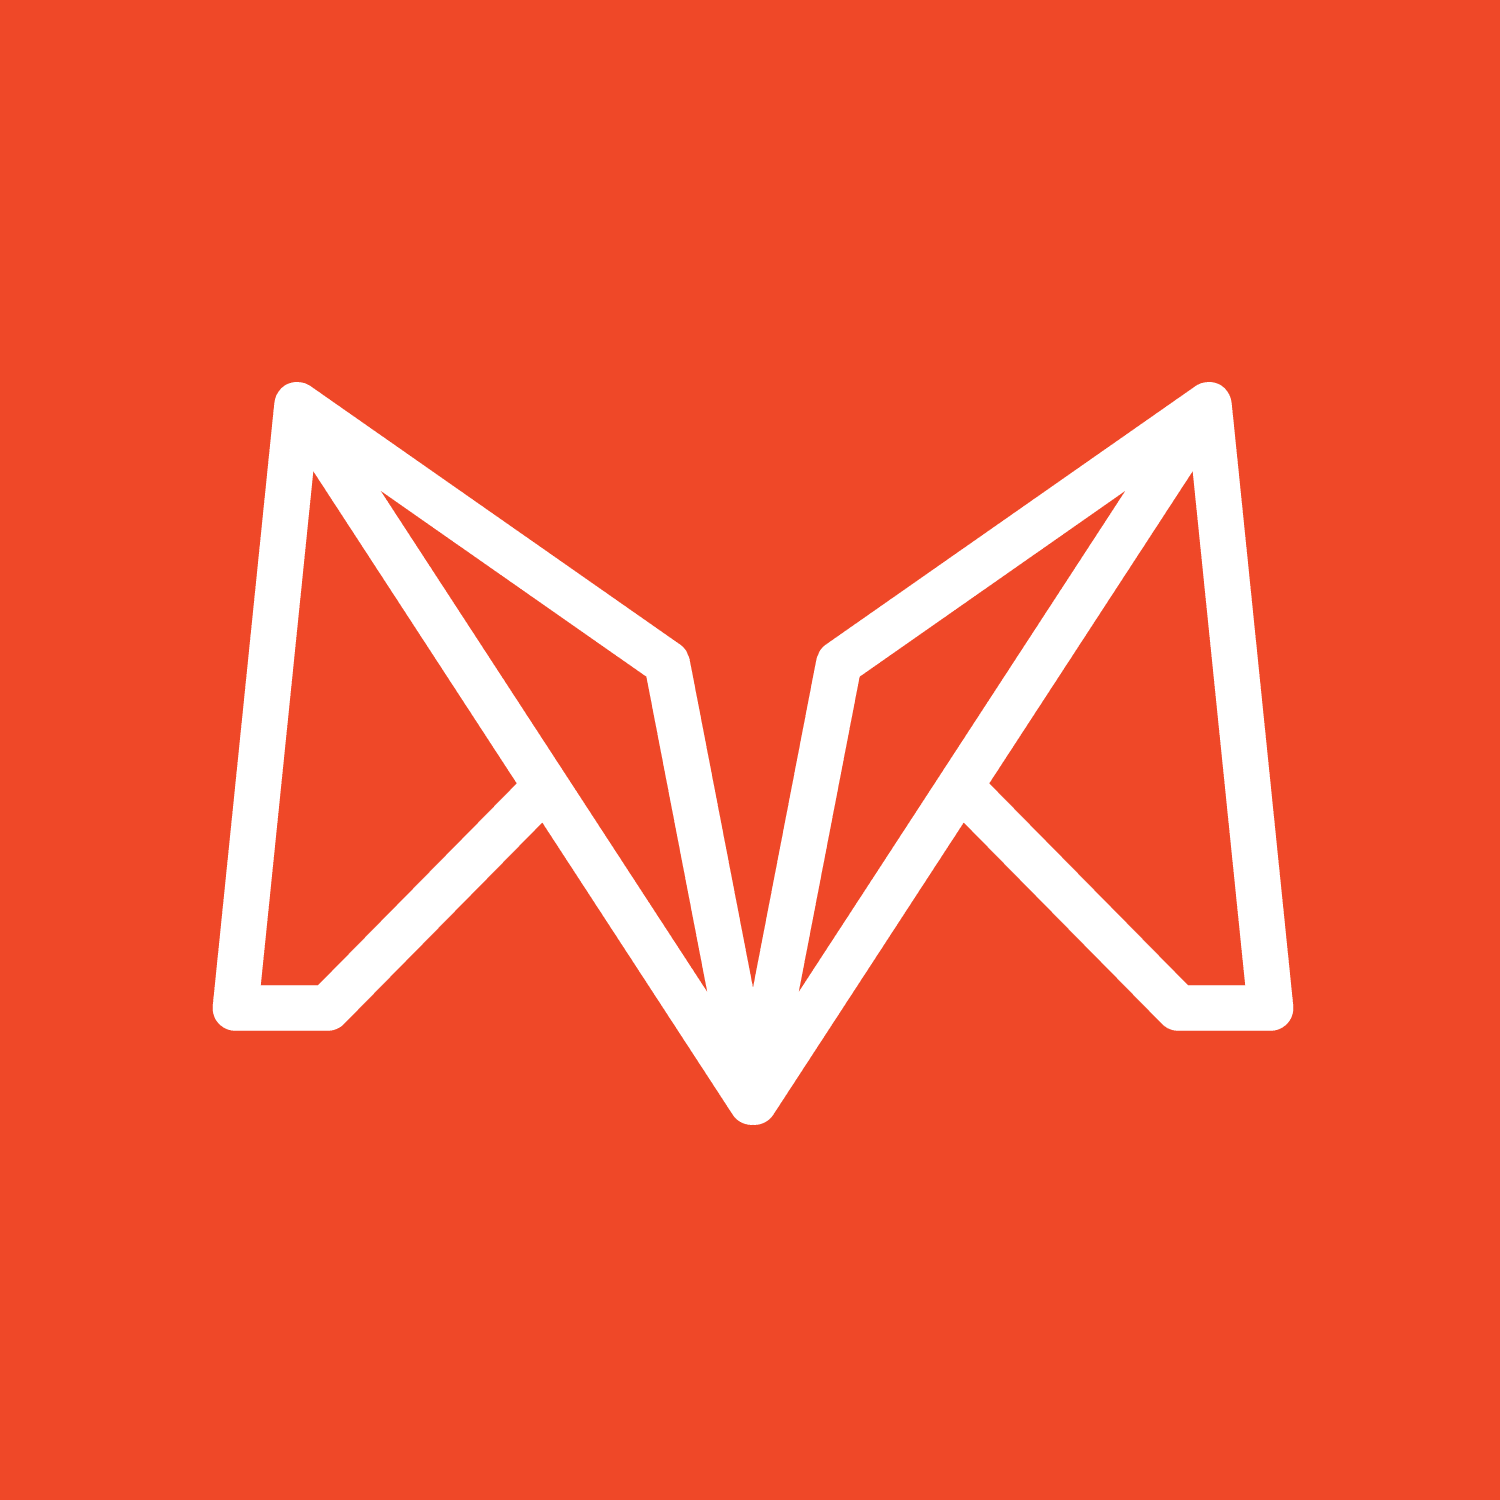 Logo design of abstract letter M